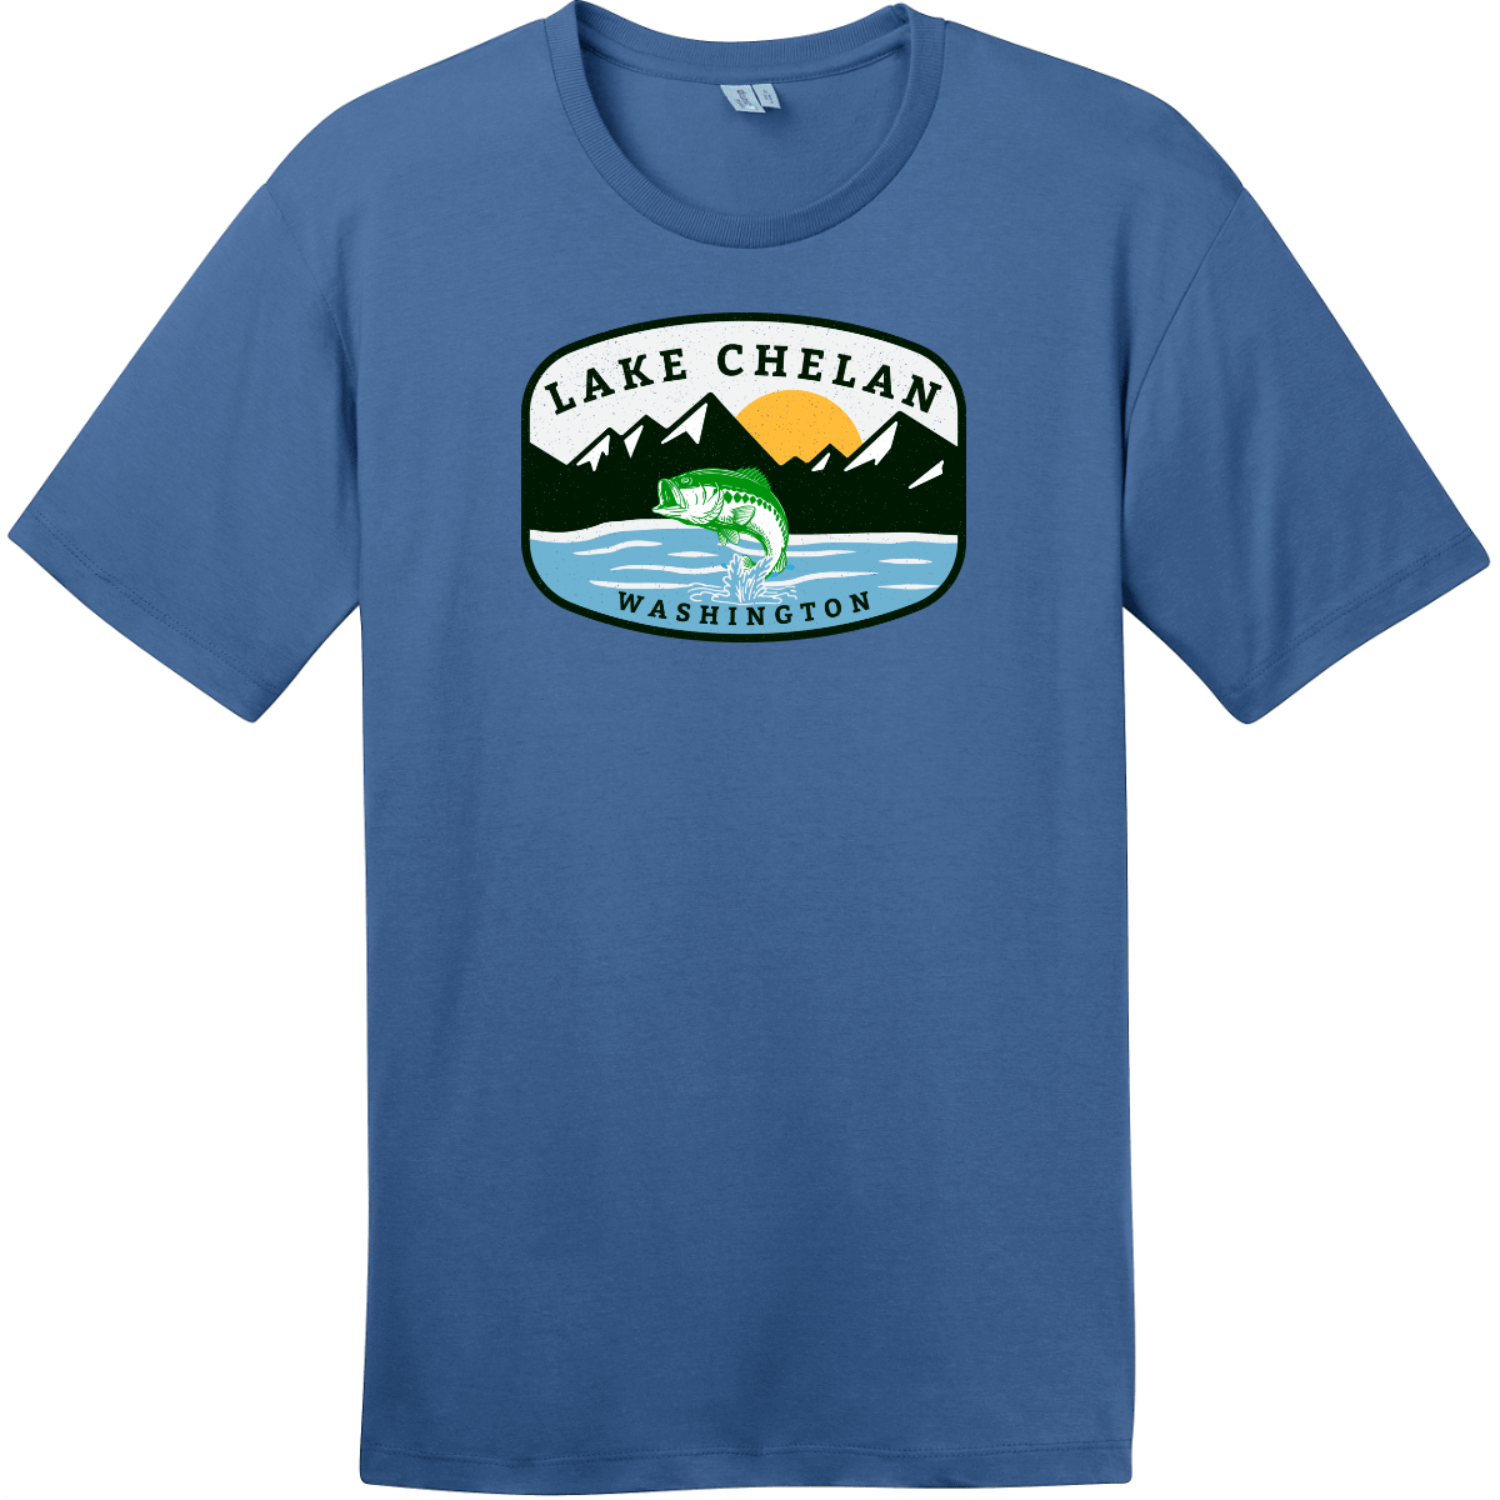 Lake Chelan Washington Fishing T-Shirt Maritime Blue District Perfect Weight Tee DT104